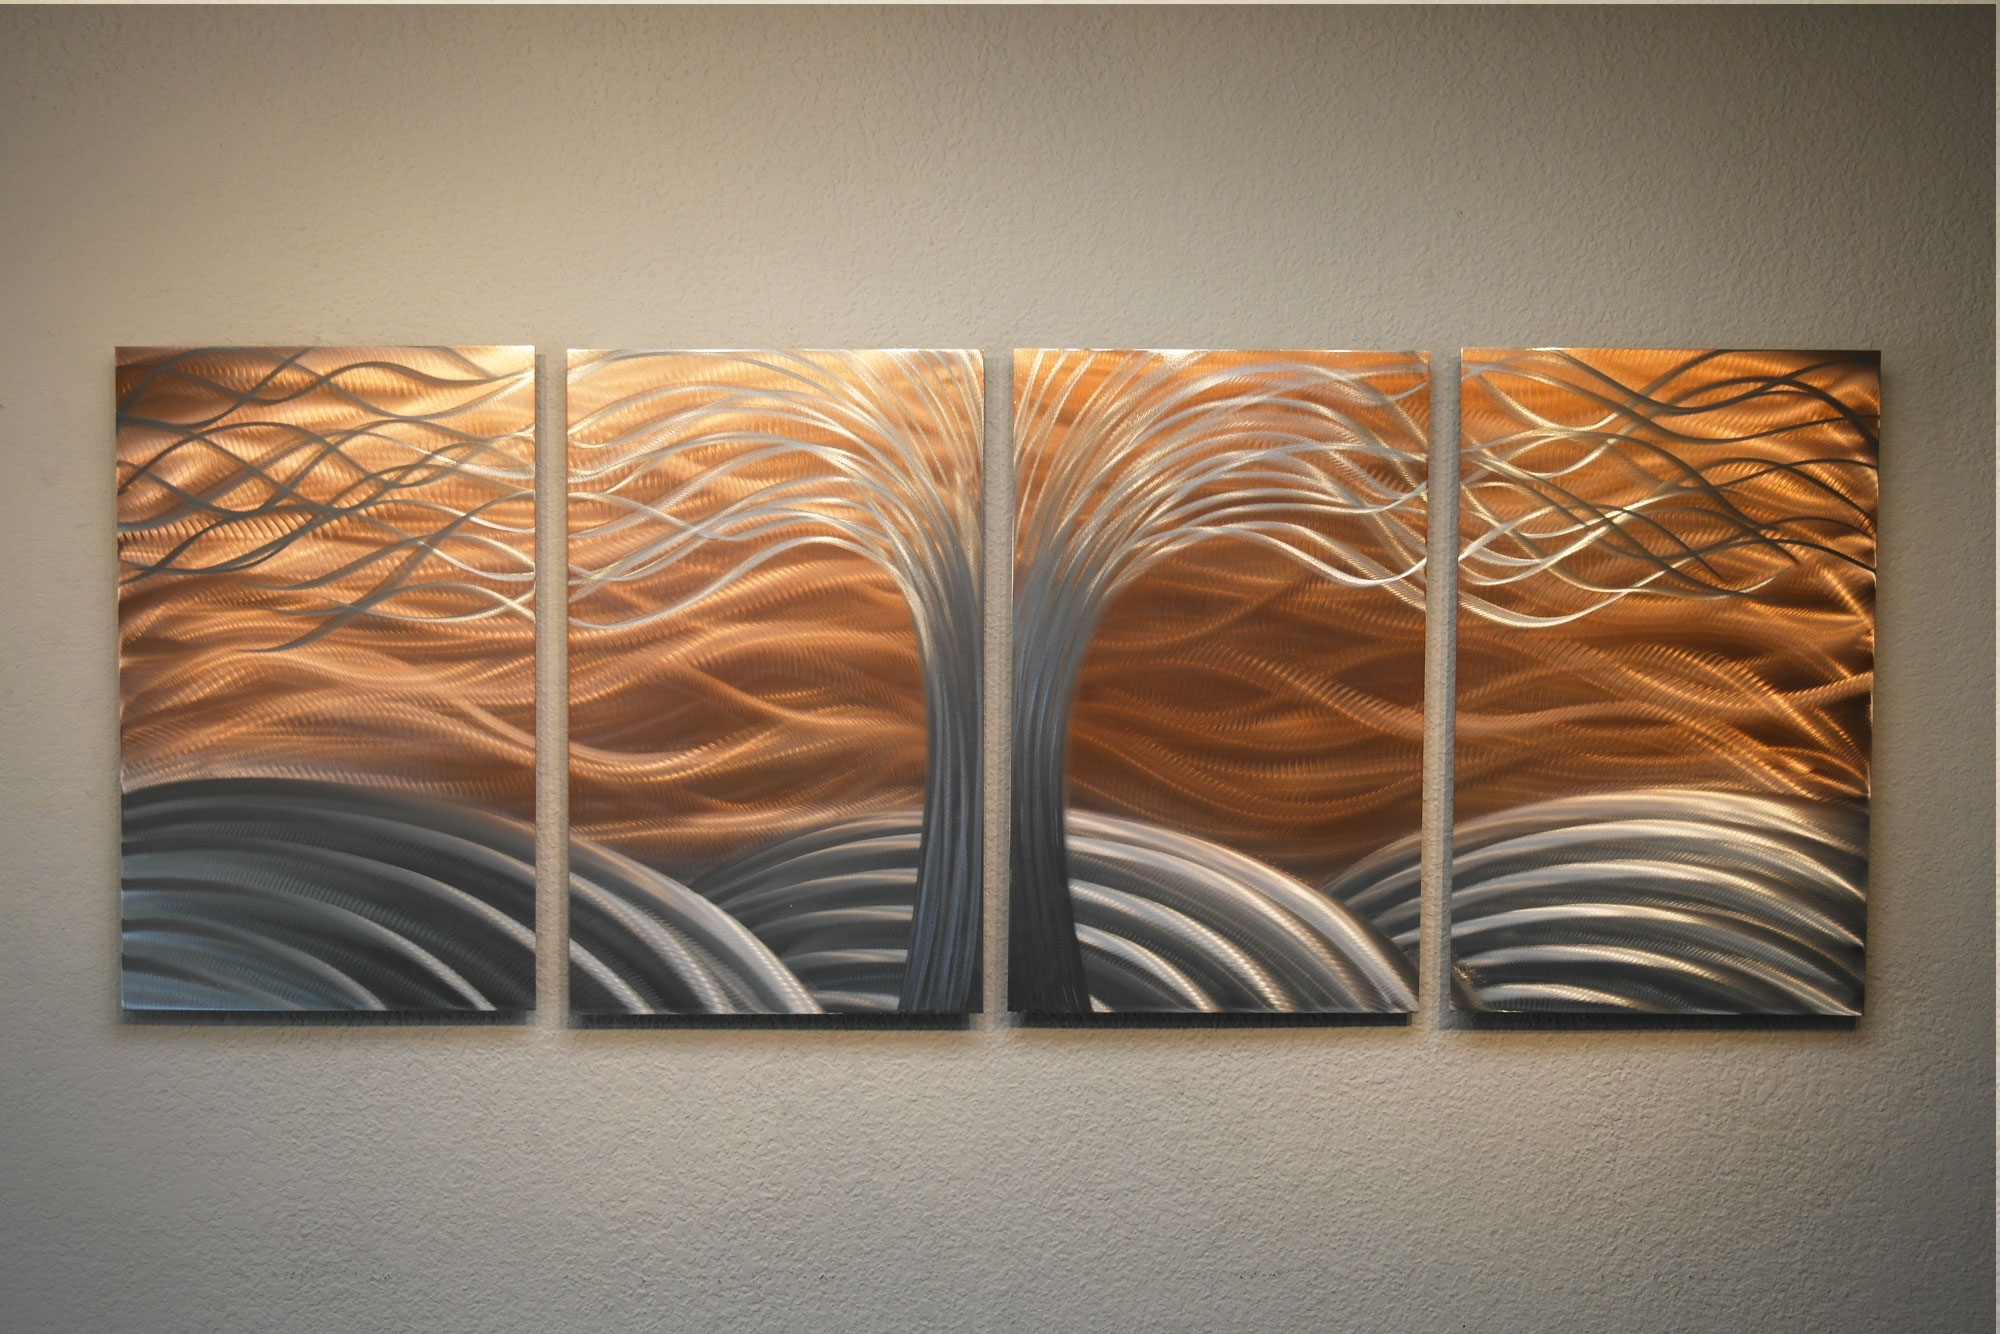 Preferred Tree Of Life Bright Copper – Metal Wall Art Abstract Sculpture Inside Copper Wall Art (View 14 of 15)